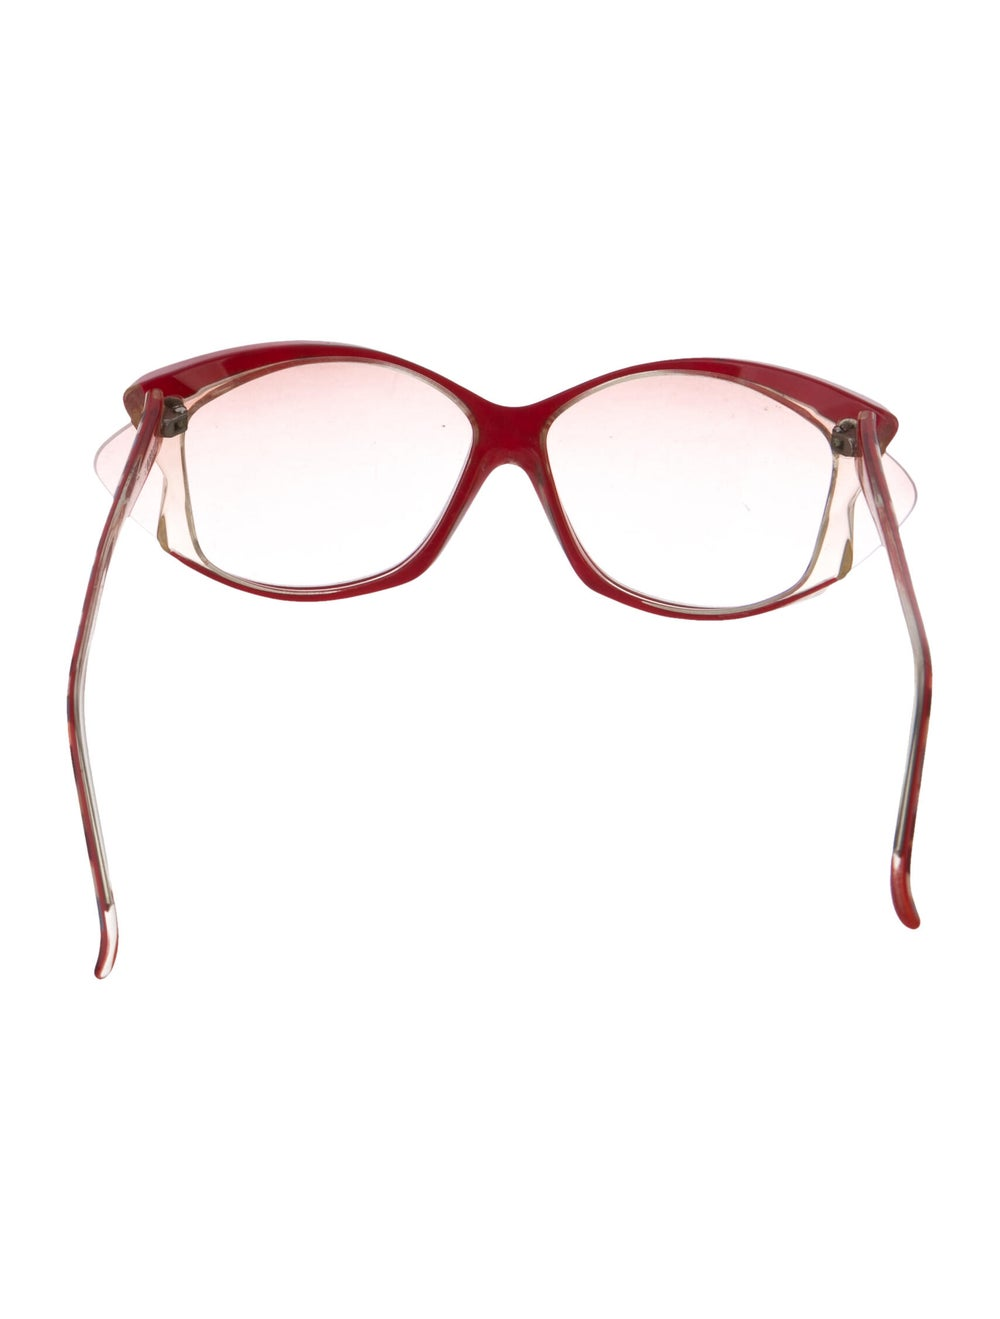 Alain Mikli Oversize Tinted Sunglasses Red - image 3